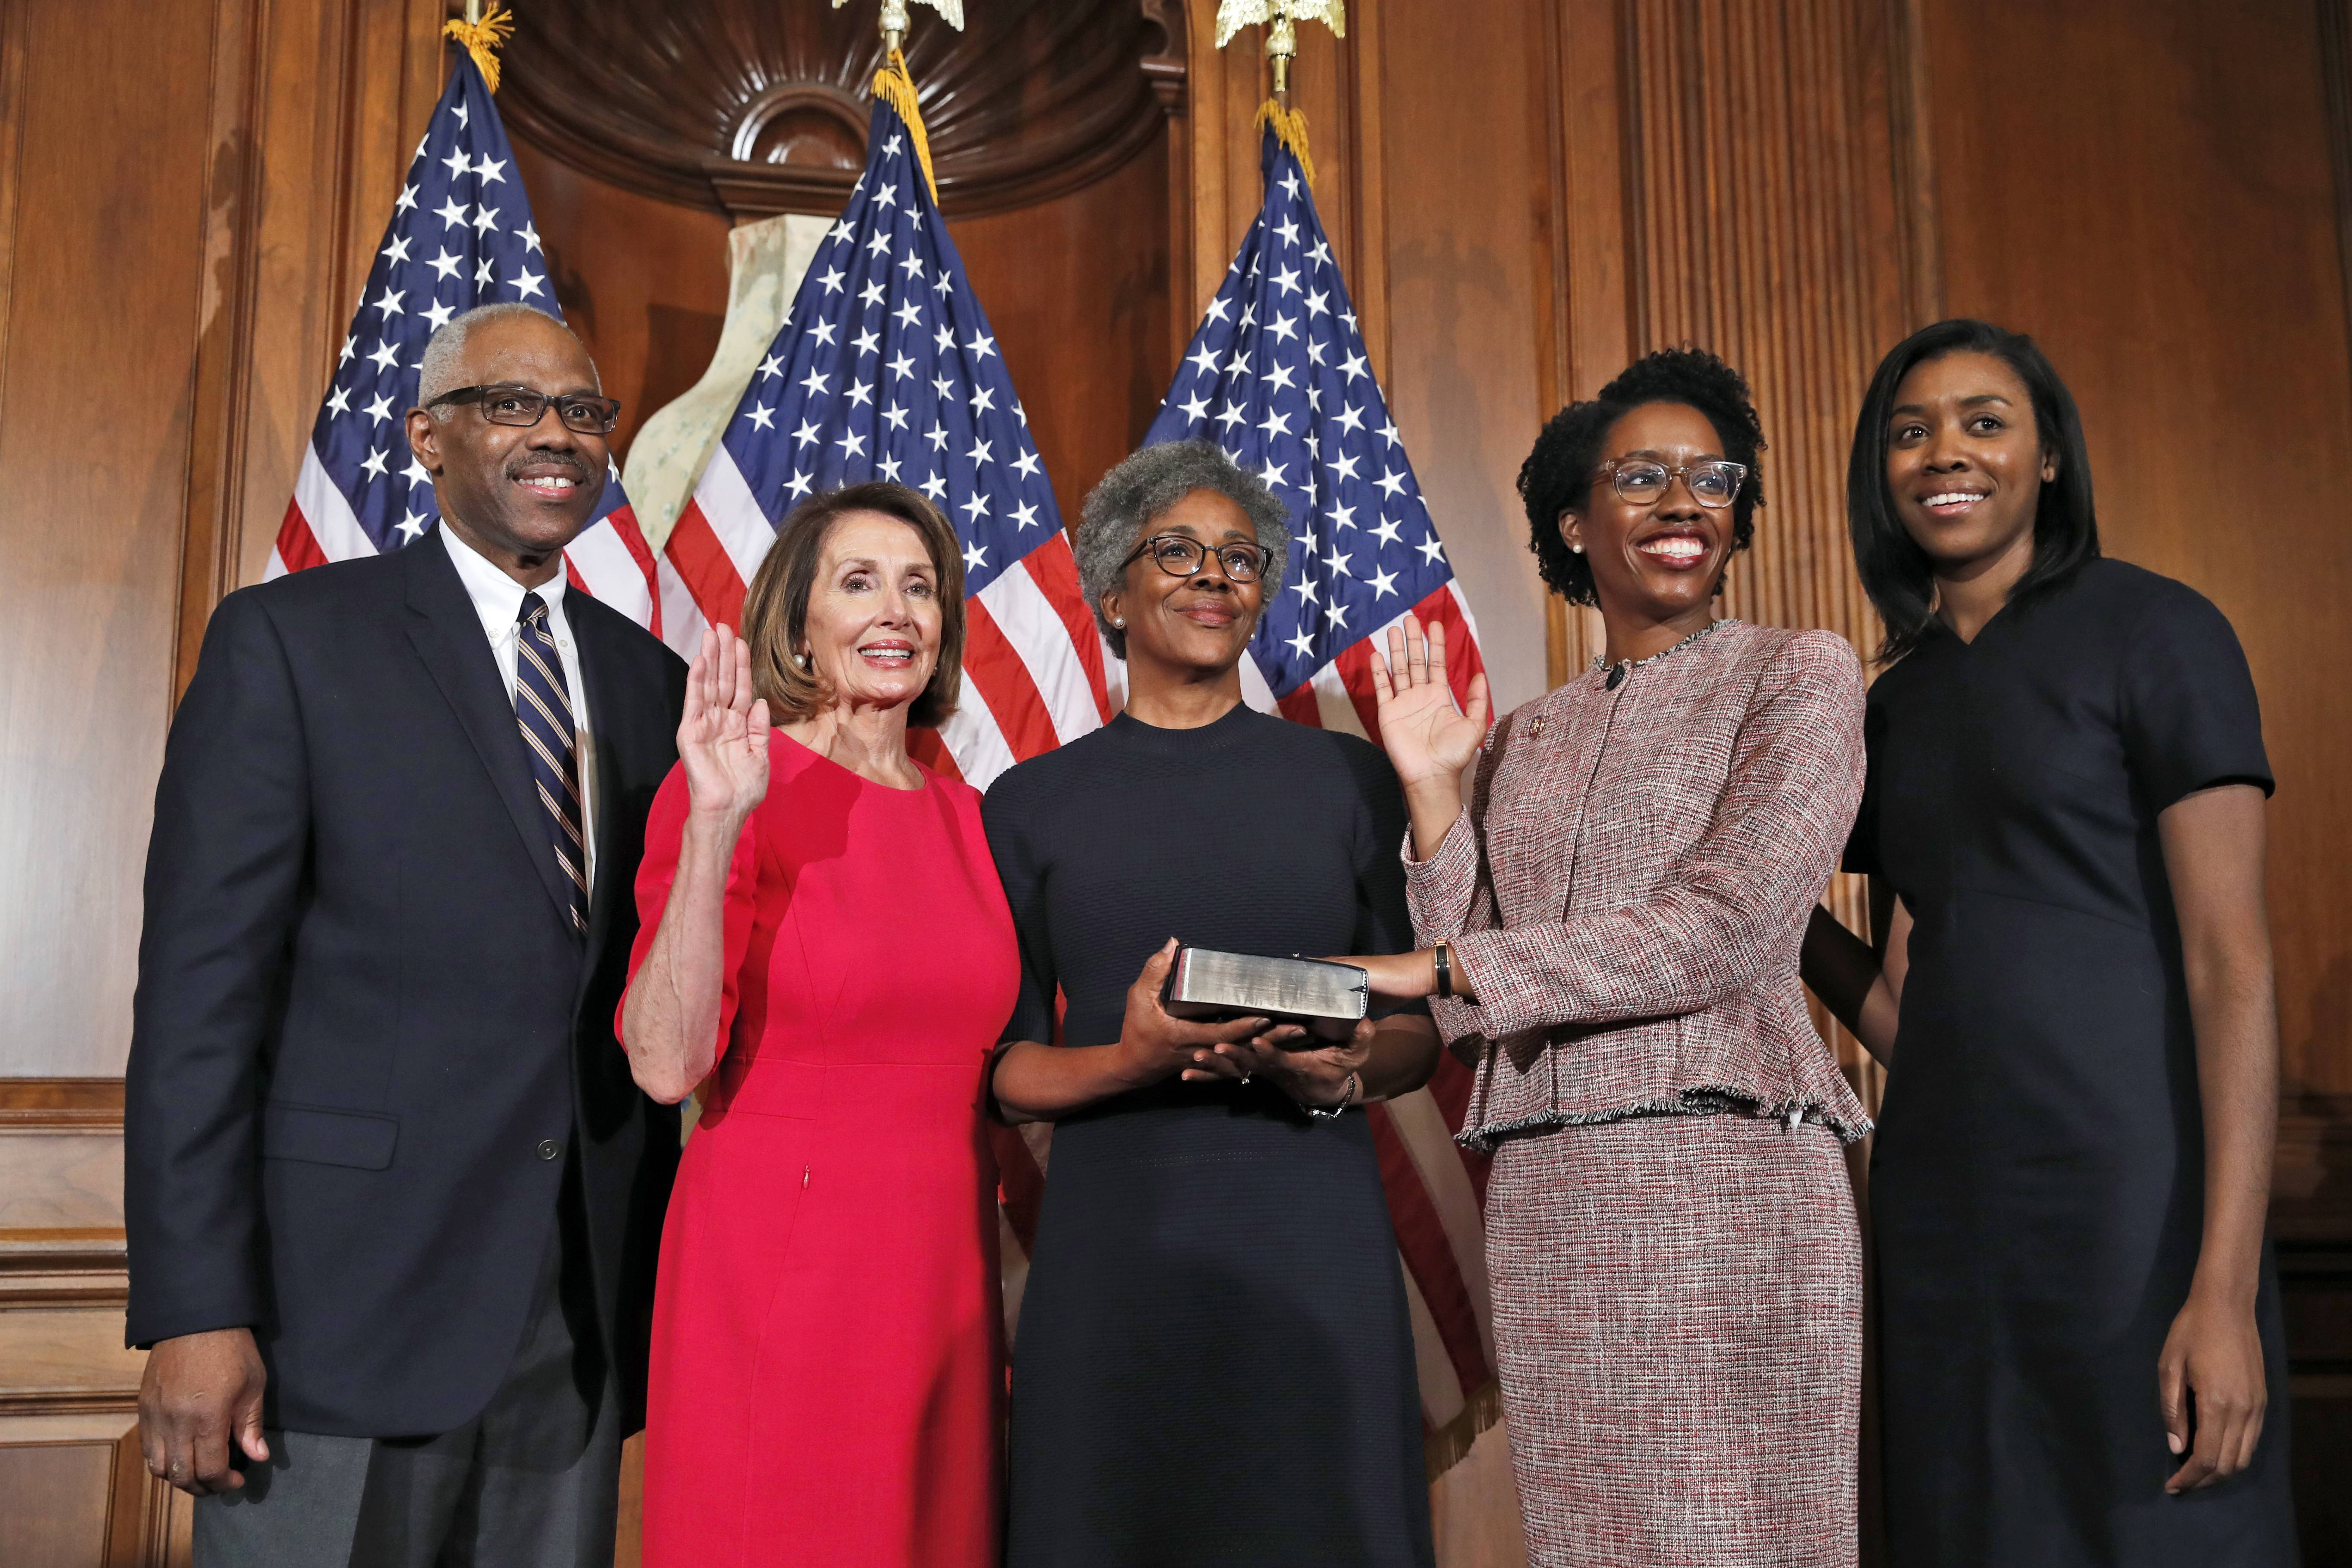 House Speaker Nancy Pelosi of Calif., left, poses during a ceremonial swearing-in with Rep. Lauren Underwood of Naperville, second from right, and her family on Capitol Hill Thursday in Washington during the opening session of the 116th Congress.